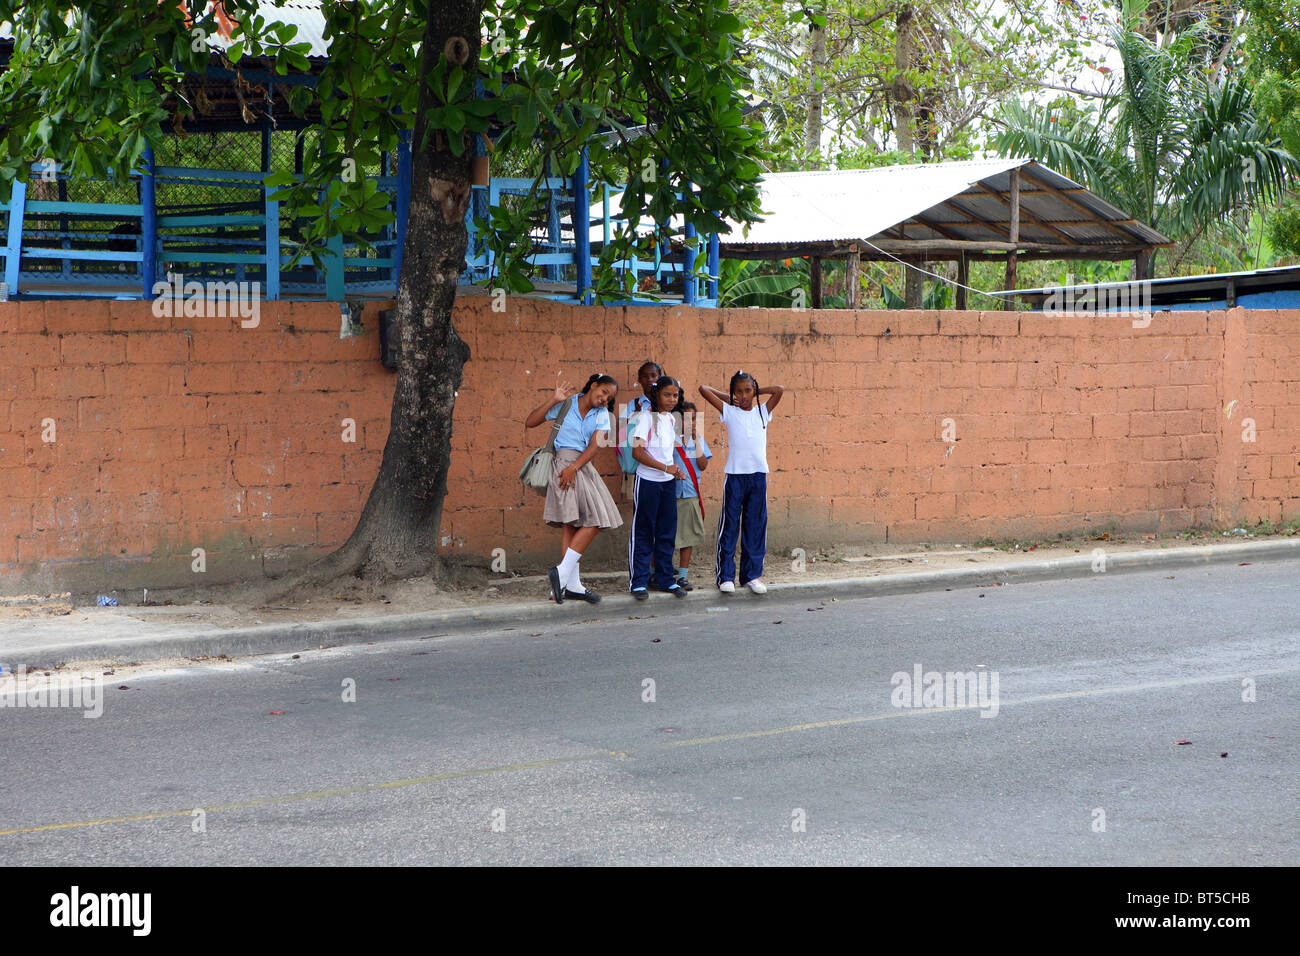 Group on young Dominican school children all dressed in uniform waiting outside their school - Stock Image